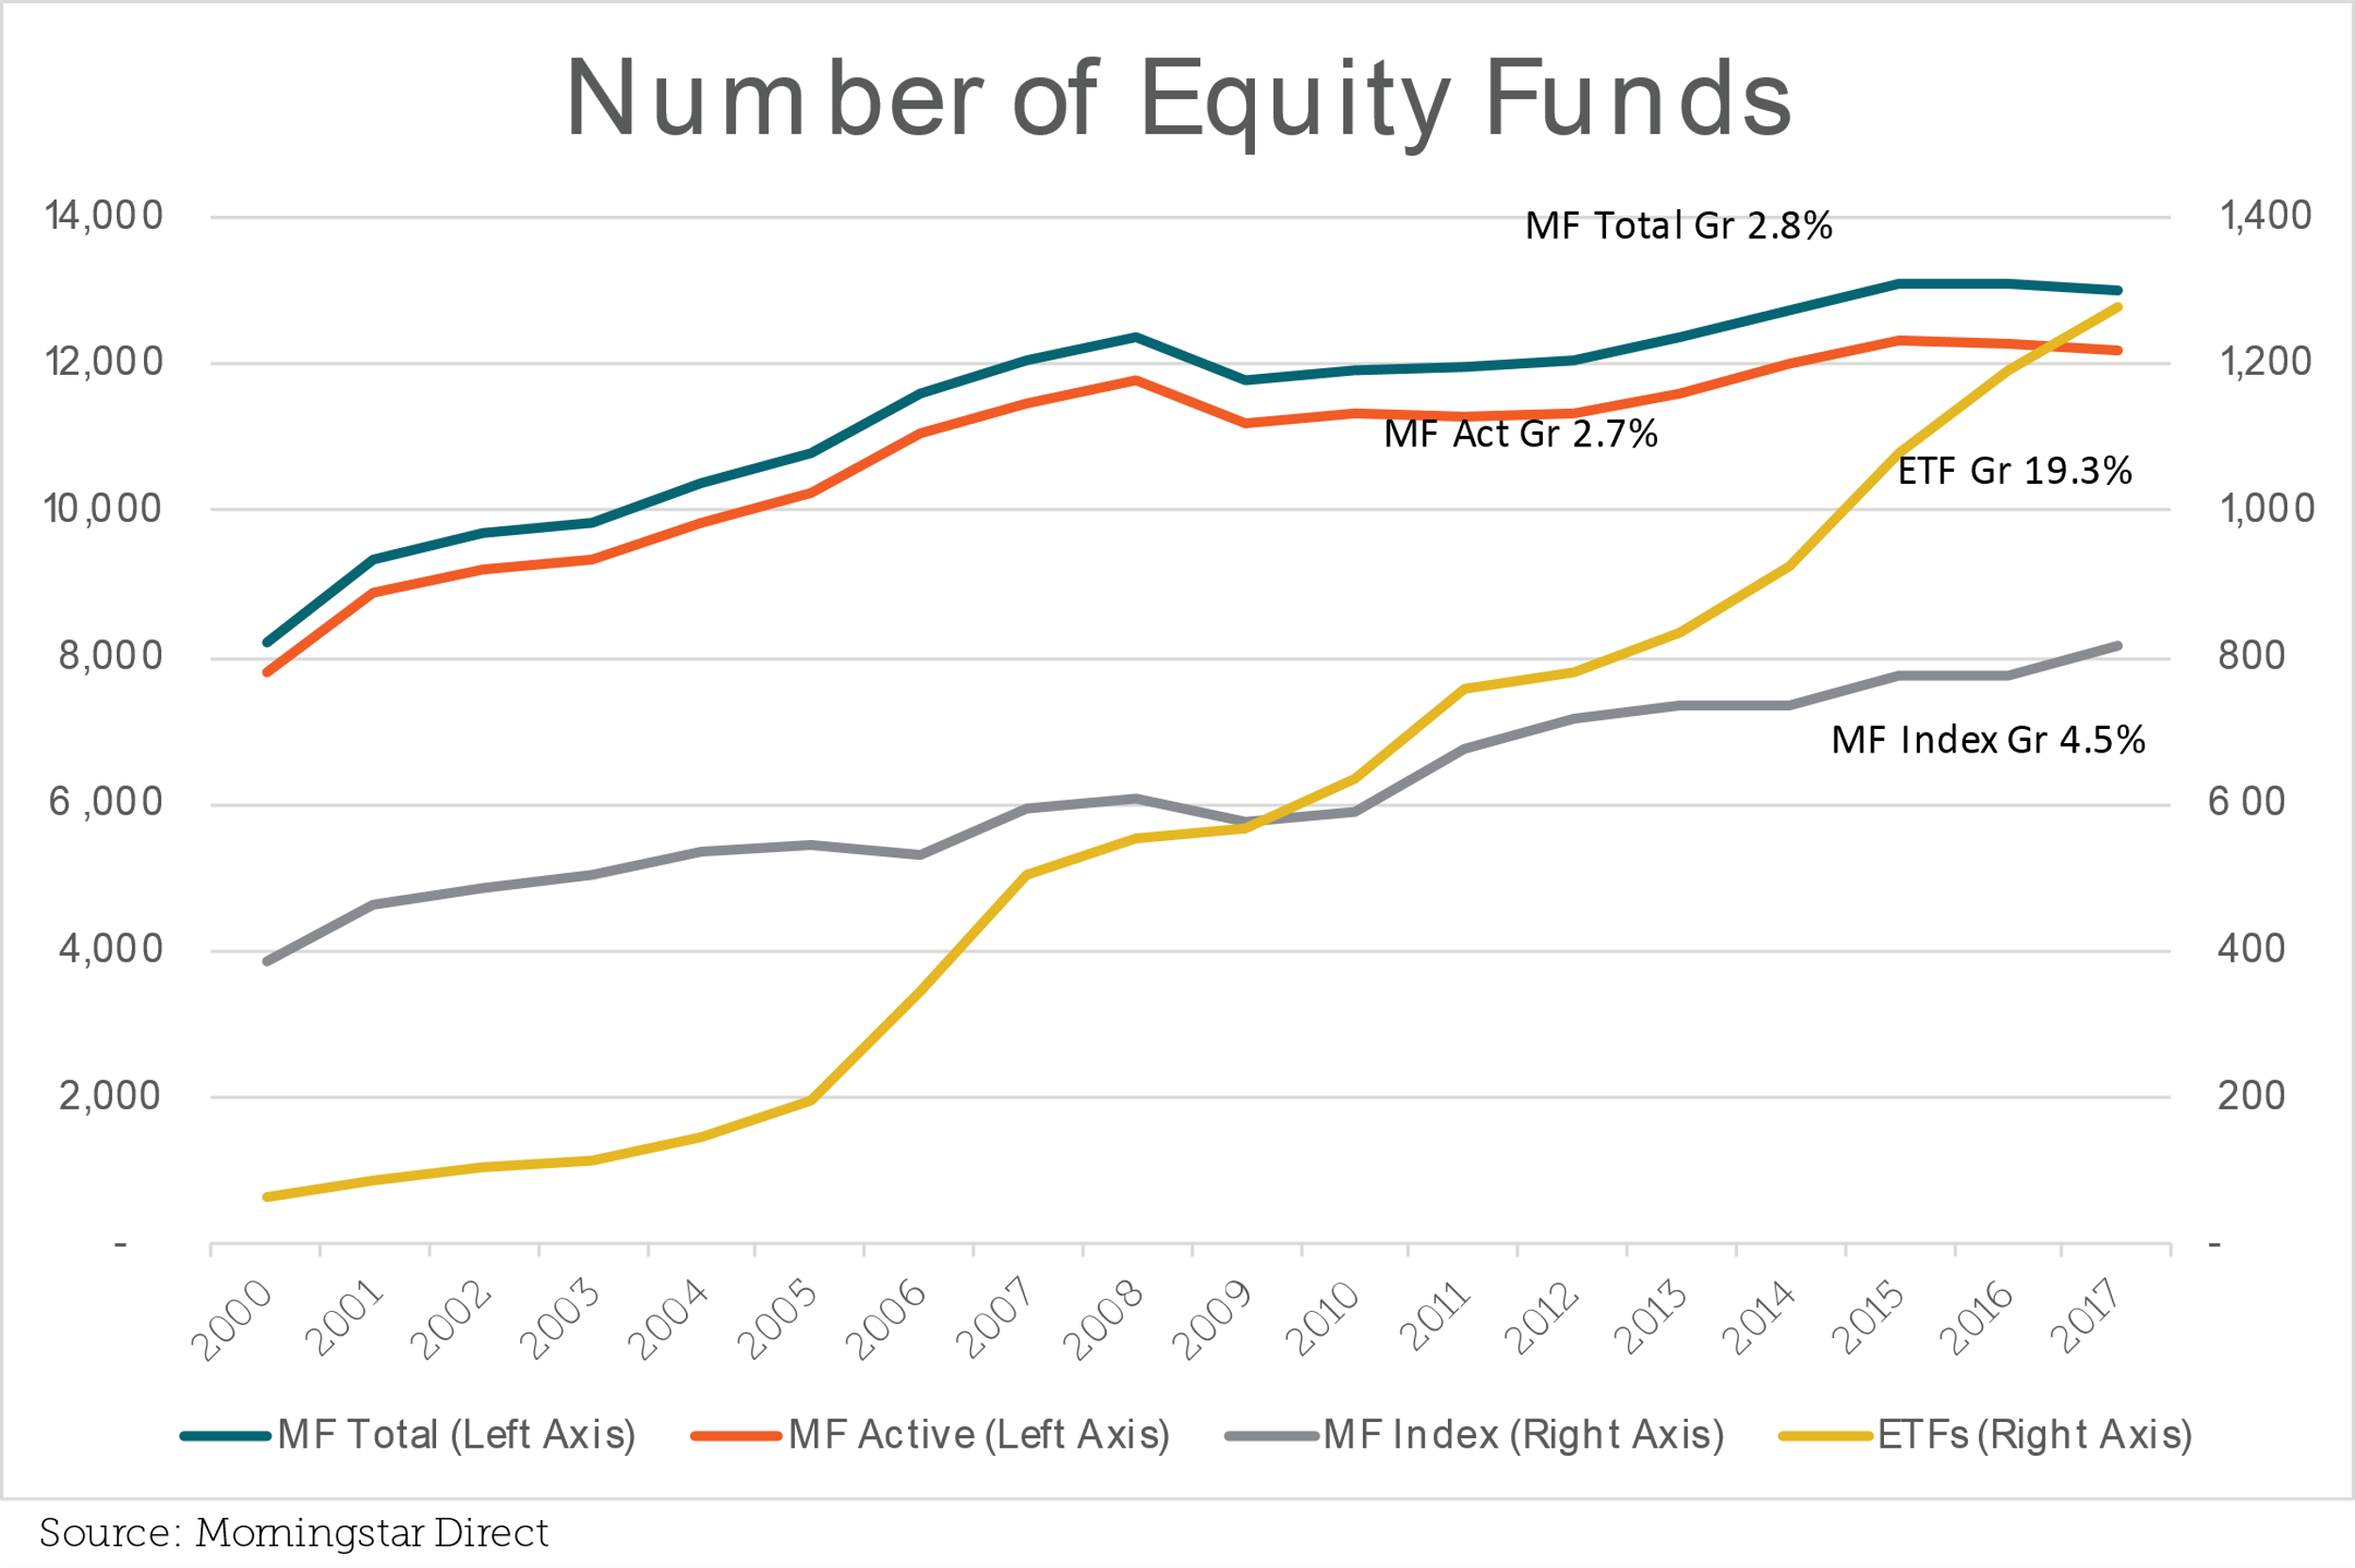 """The Race to Zero By Kostya Etus, CFA Portfolio Manager, CLS Investments """"Nothing? Who do you think you're dealing with? Nothing costs nothing."""" — Terry Benedict, Ocean's Twelve (2004) One of the biggest advantages of exchange traded funds (ETFs) over mutual funds (MFs) is lower expense ratios. Since ETFs are primarily index-based, and many have similar exposures, one of the most common ways firms compete is by lowering fees. Thus, newly launched ETFs have been undercutting existing fund expense ratios. In turn, issuers of the existing funds have been cutting their fees to stay relevant. This has generated a vicious cycle, which has come to be known as """"the race to zero."""" This race has been a net benefit to investors, and if you are a thrifty shopper like me, ETFs have become that much more appealing. But the rise of ETFs and their huge asset growth have turned some heads in the MF world, particularly as some of that growth has been at the expense of MF assets. In response, it appears MF managers have followed suit and begun to reduce expenses and shift focus to index products to remain competitive. I have prepared an evaluation of expense growth over time for equity MFs and ETFs. But first, let's take a look at growth in the number of funds and assets to gain a better insight of market trends. Number of Funds The first chart shows the growth in the number of equity funds. Annual growth of total MFs and active MFs has been quite slow since 2000 (just under 3%), and it flattened out after 2009, which is when ETFs really took off. ETFs stand out with their spectacular growth rate of almost 20% per year with no end in sight. Note that index MFs have more than doubled in number since 2000, growing at a higher rate than active MFs — evidence that fund sponsors appear to have shifted focus on the types of products they launch."""